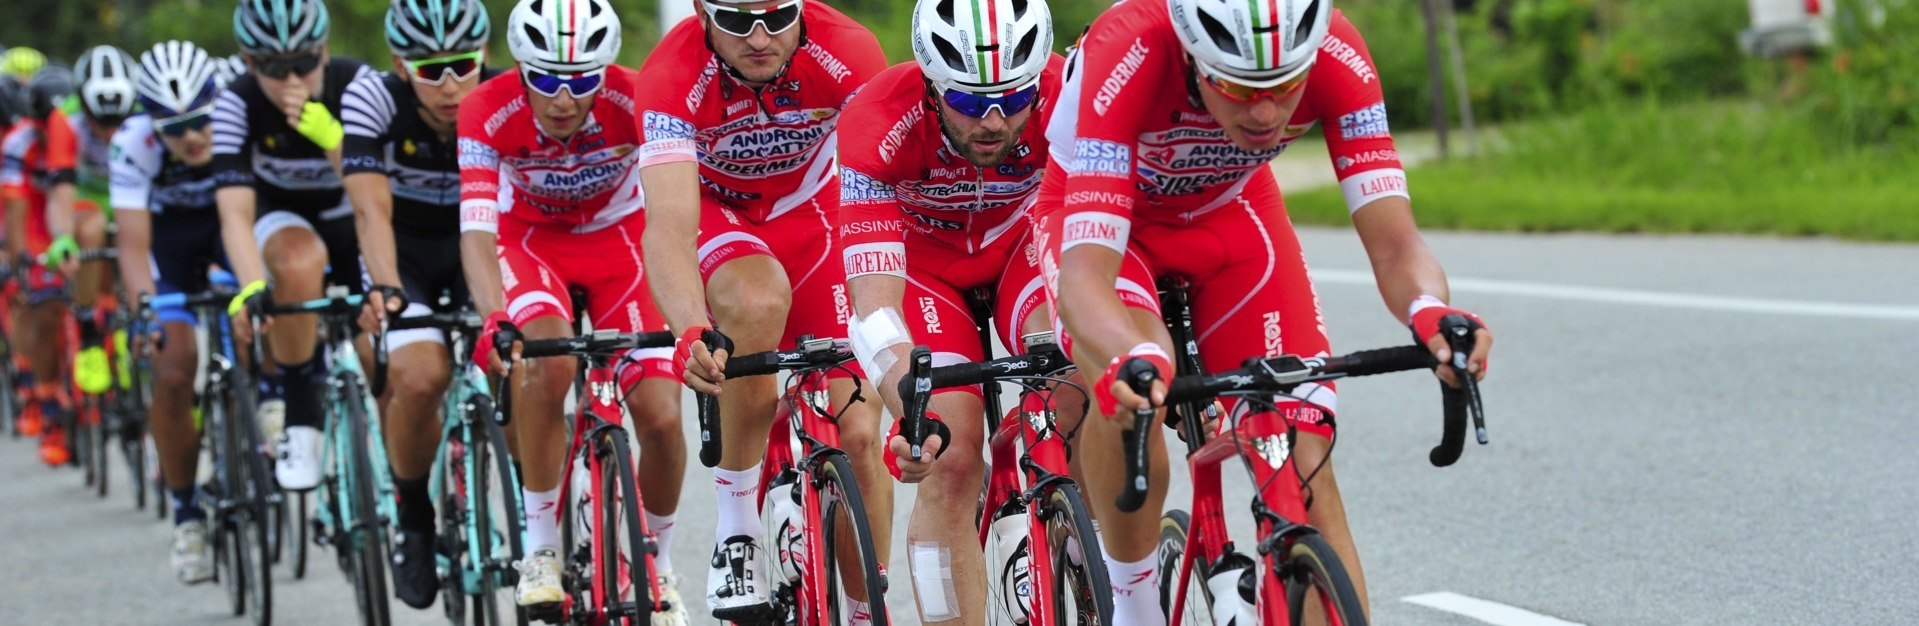 Bottecchia Team